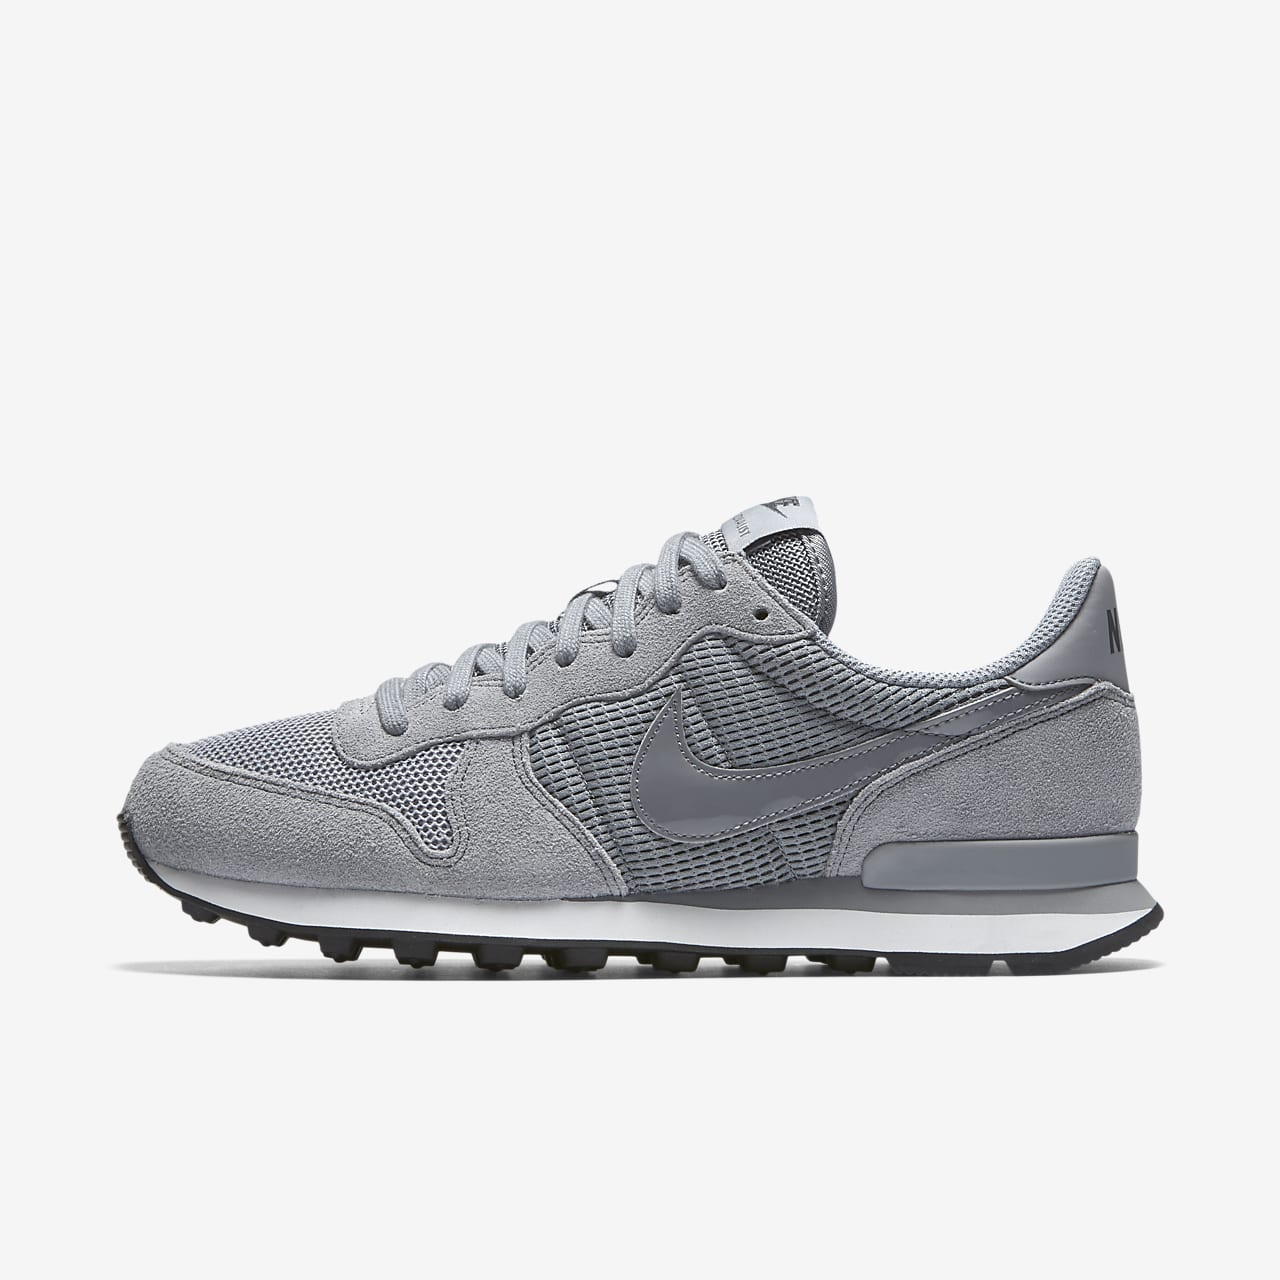 deuda Precipicio Oeste  Nike Internationalist Women's Shoe. Nike.com